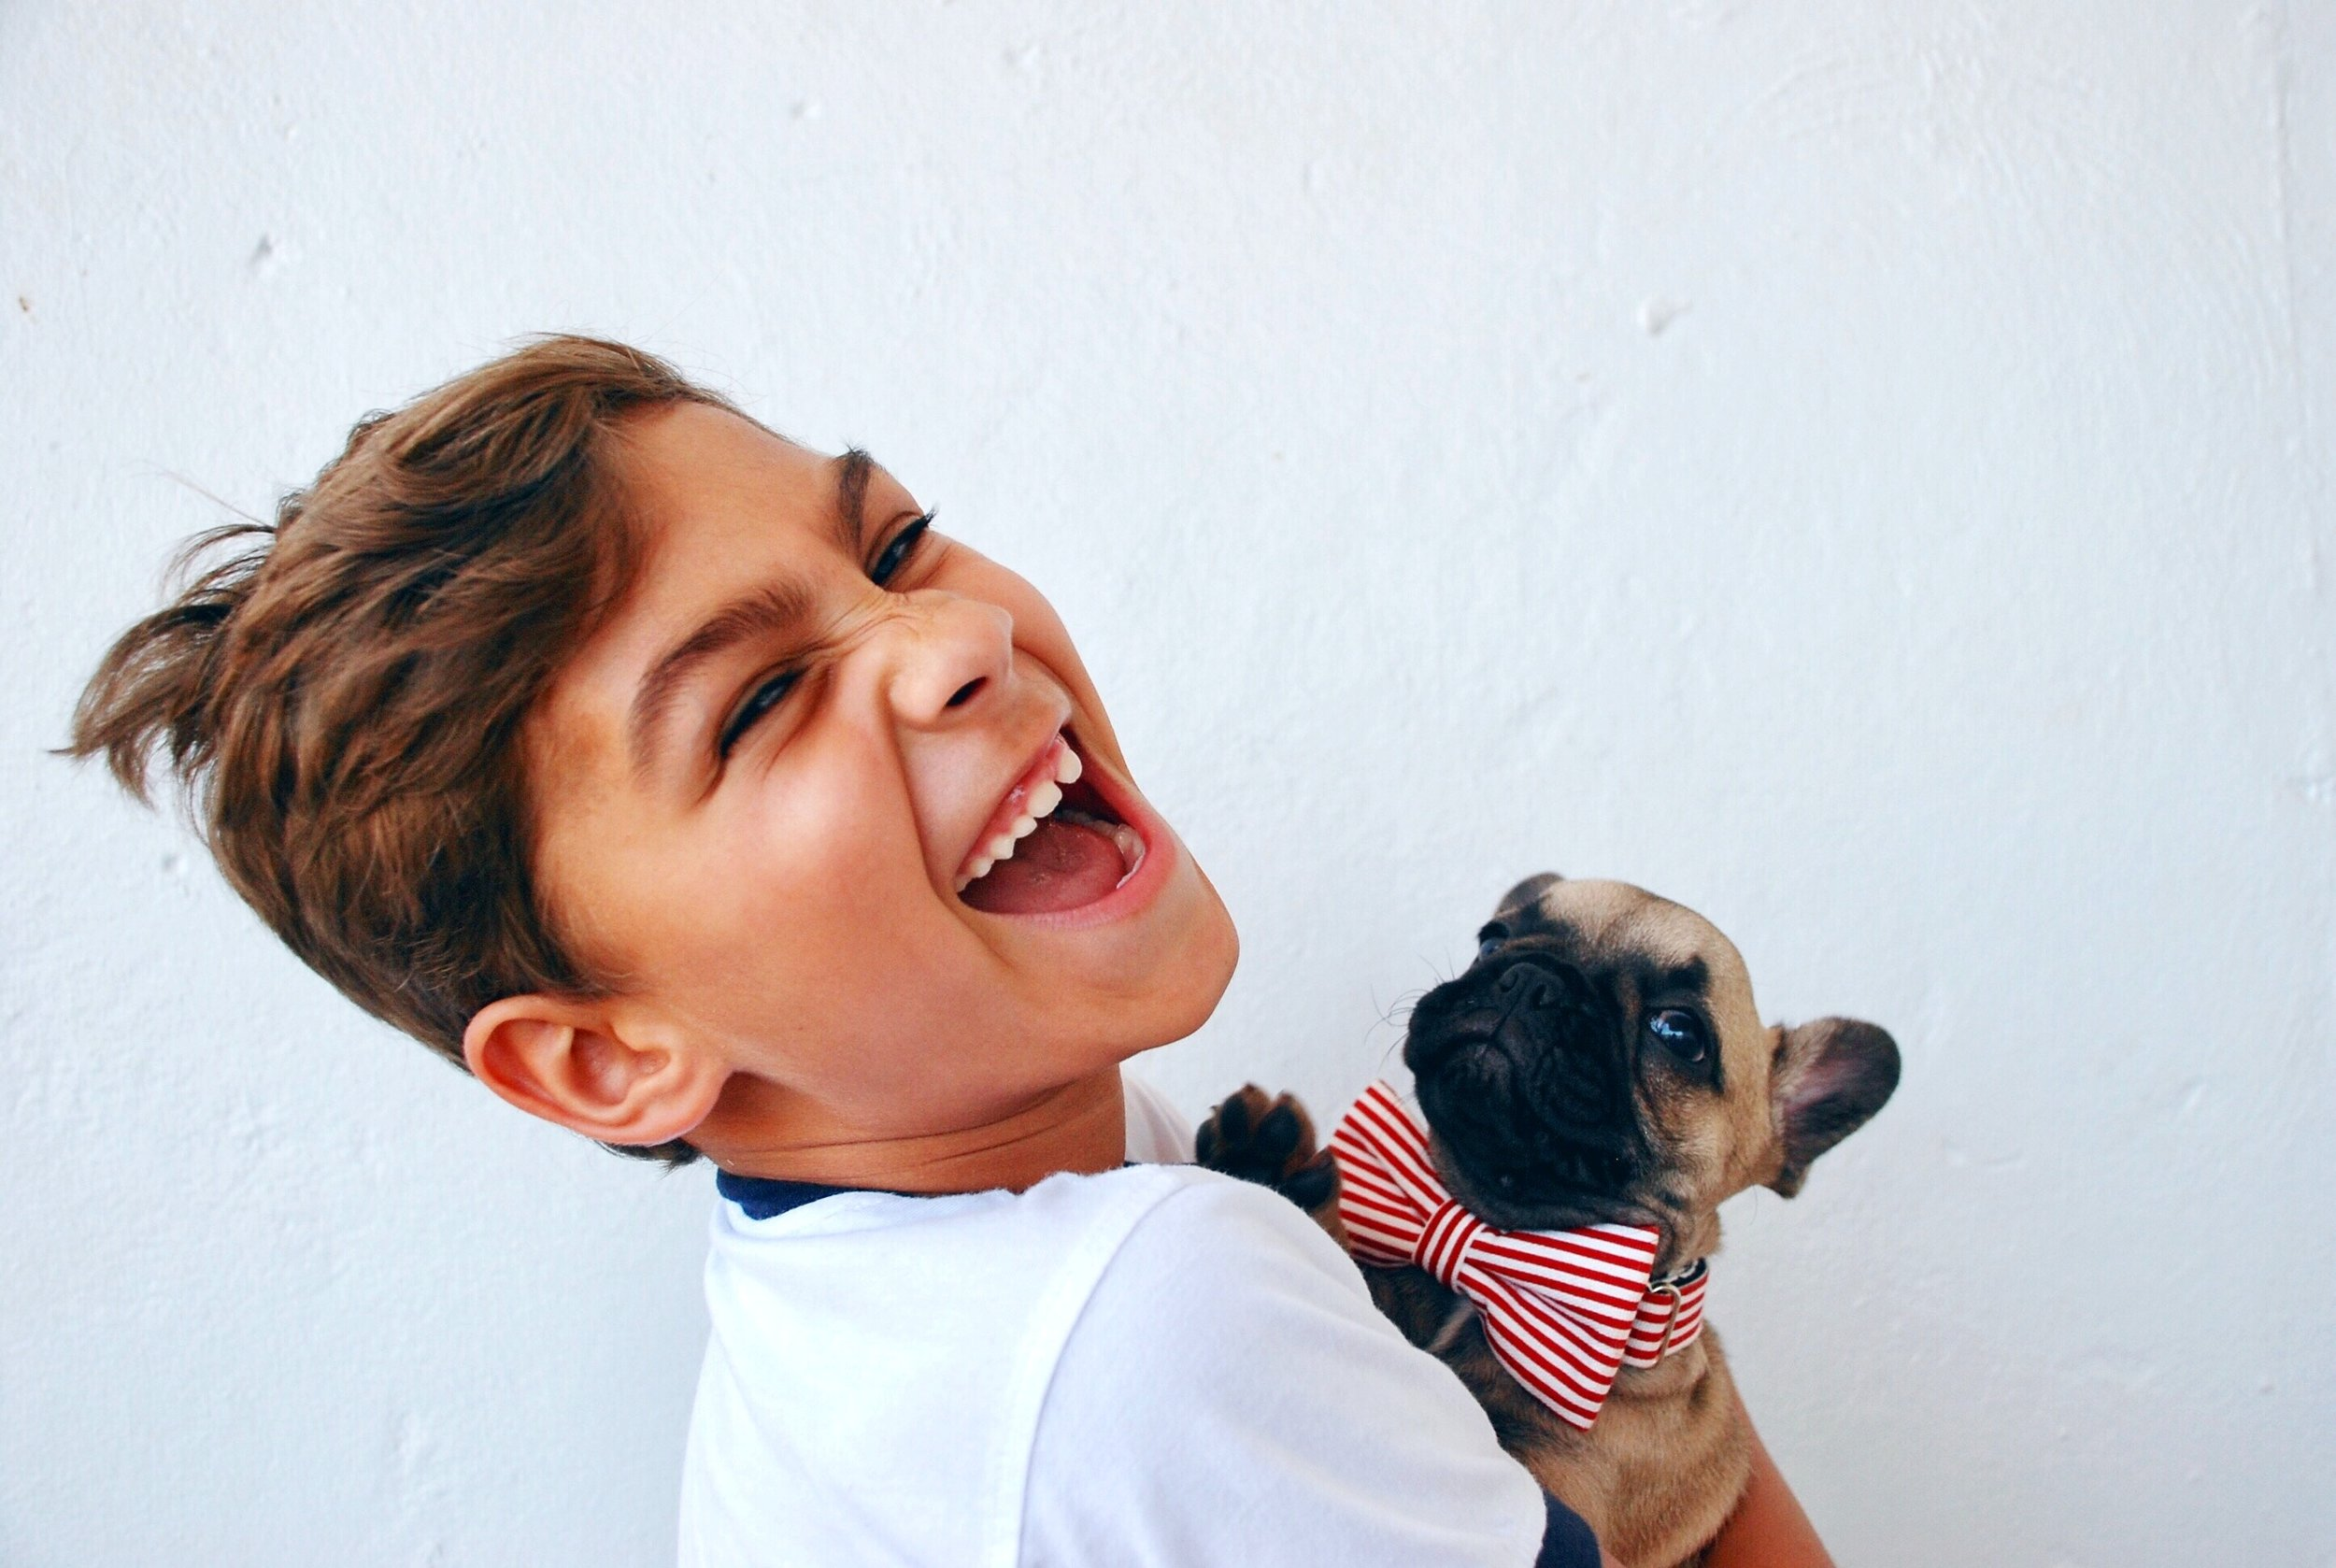 The boy seems happy but the dog looks worried.